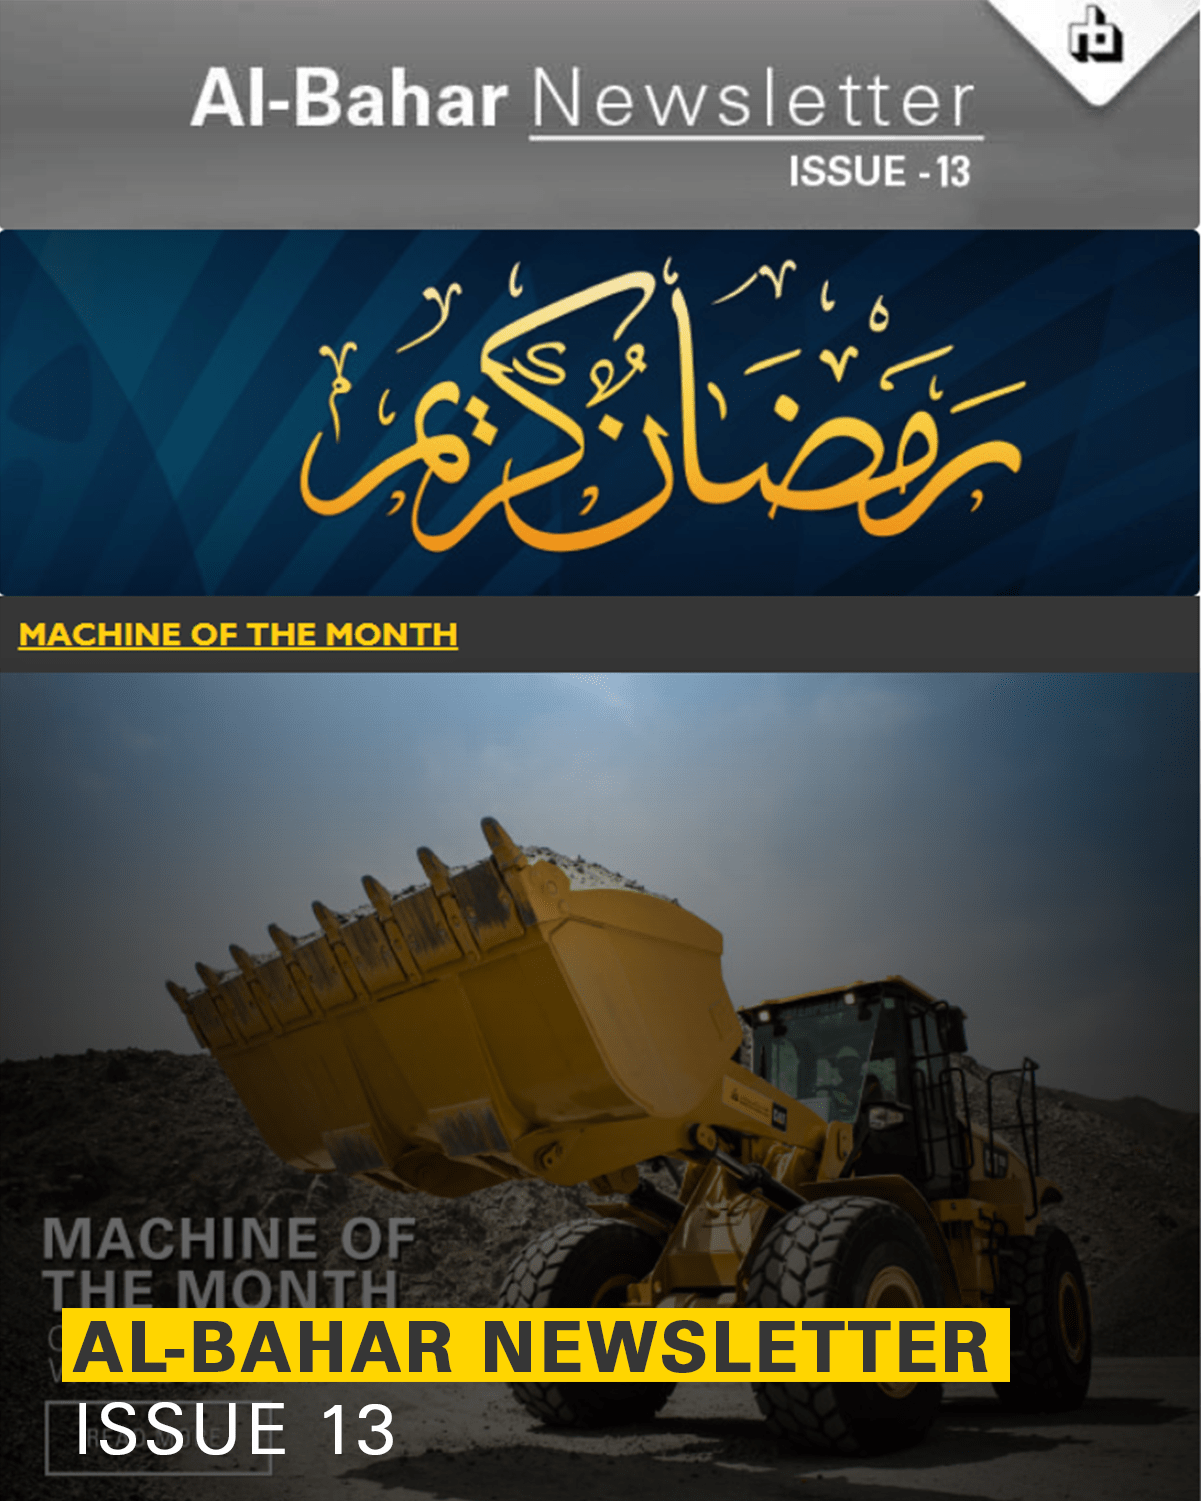 al-bahar-2018-newsletter-issue-13